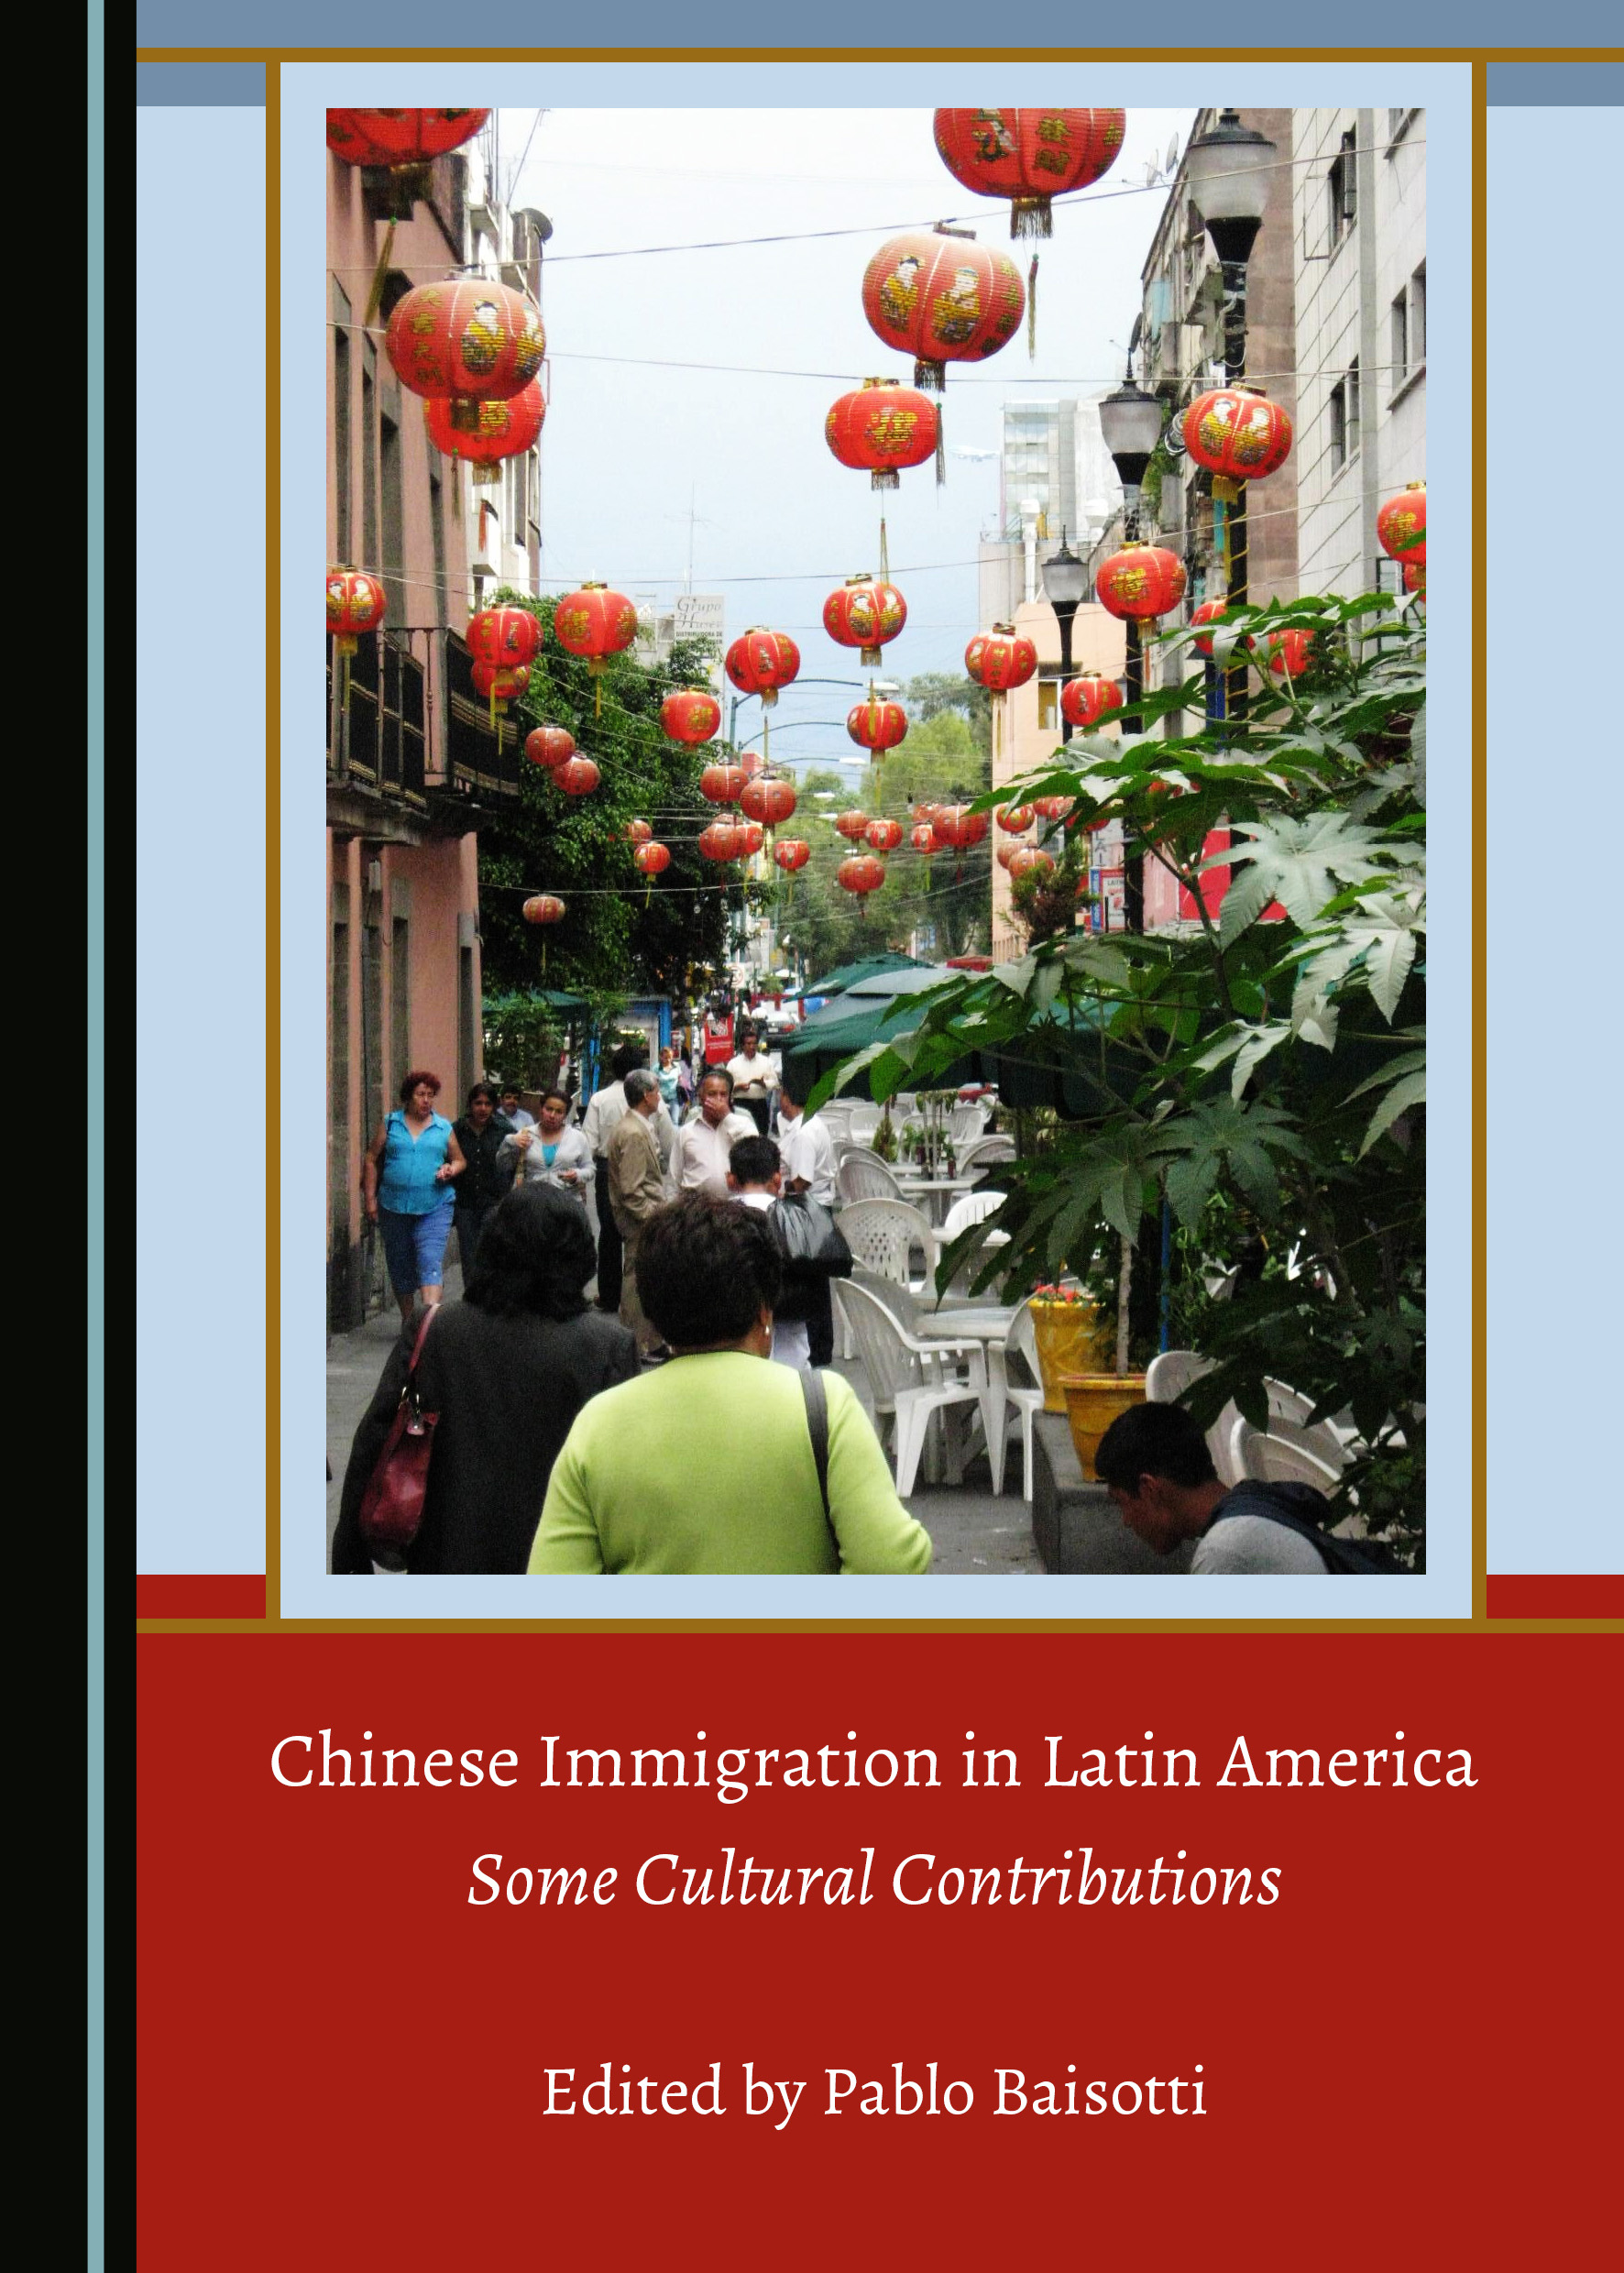 Chinese Immigration in Latin America: Some Cultural Contributions